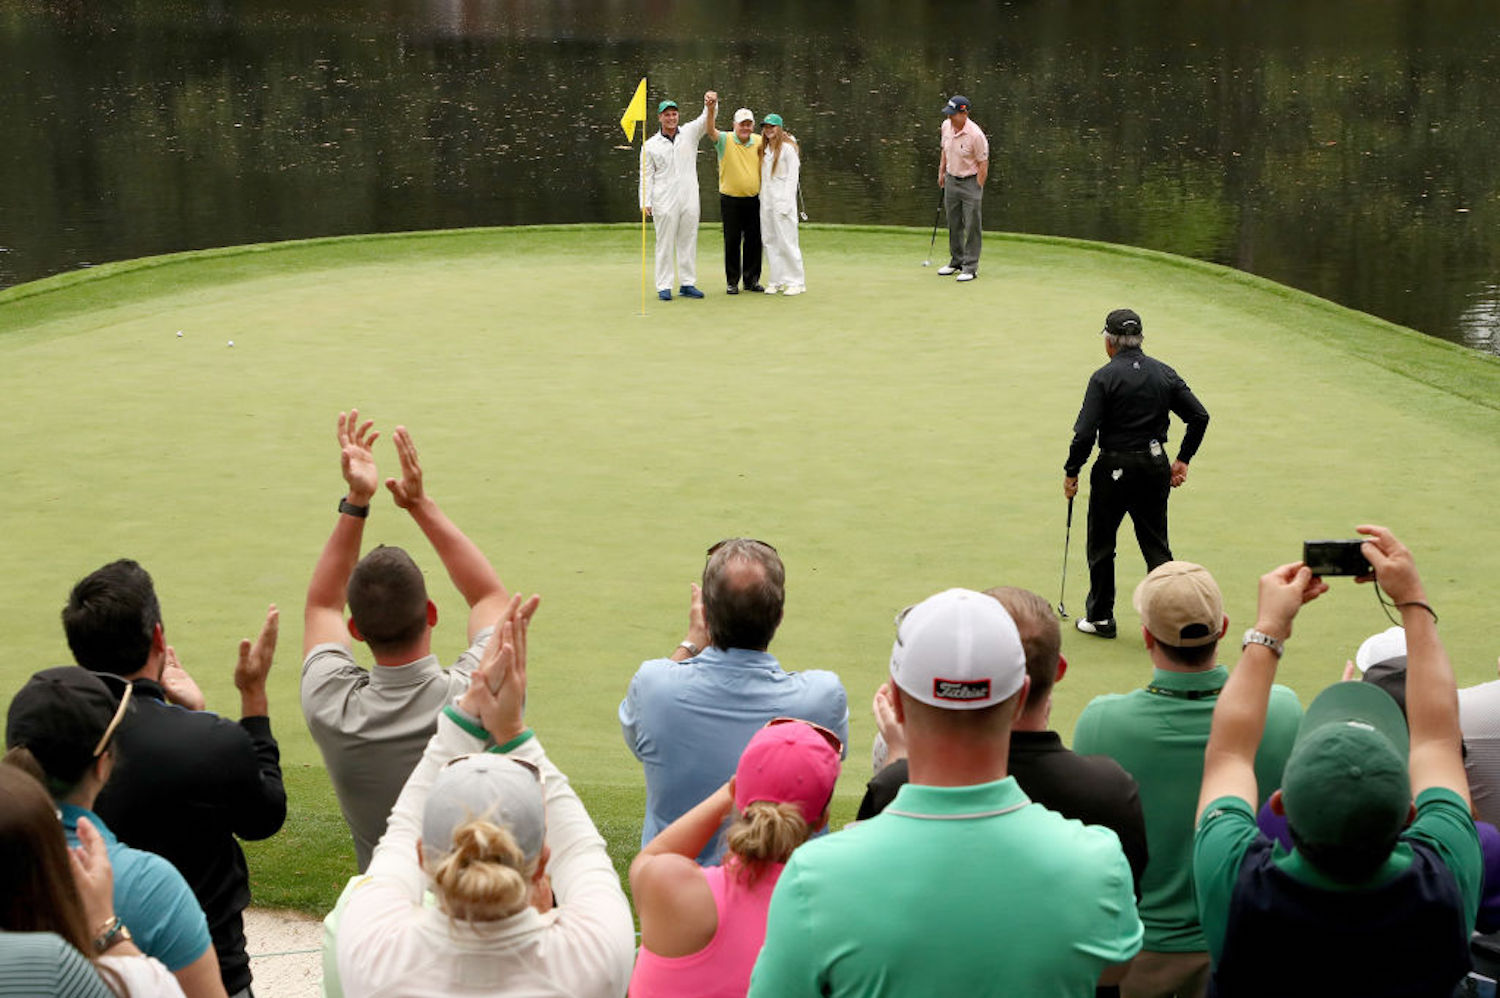 Jack Nicklaus has a plethora of fond memories at The Masters, but his favorite actually occured during the par-3 contest with his grandson.